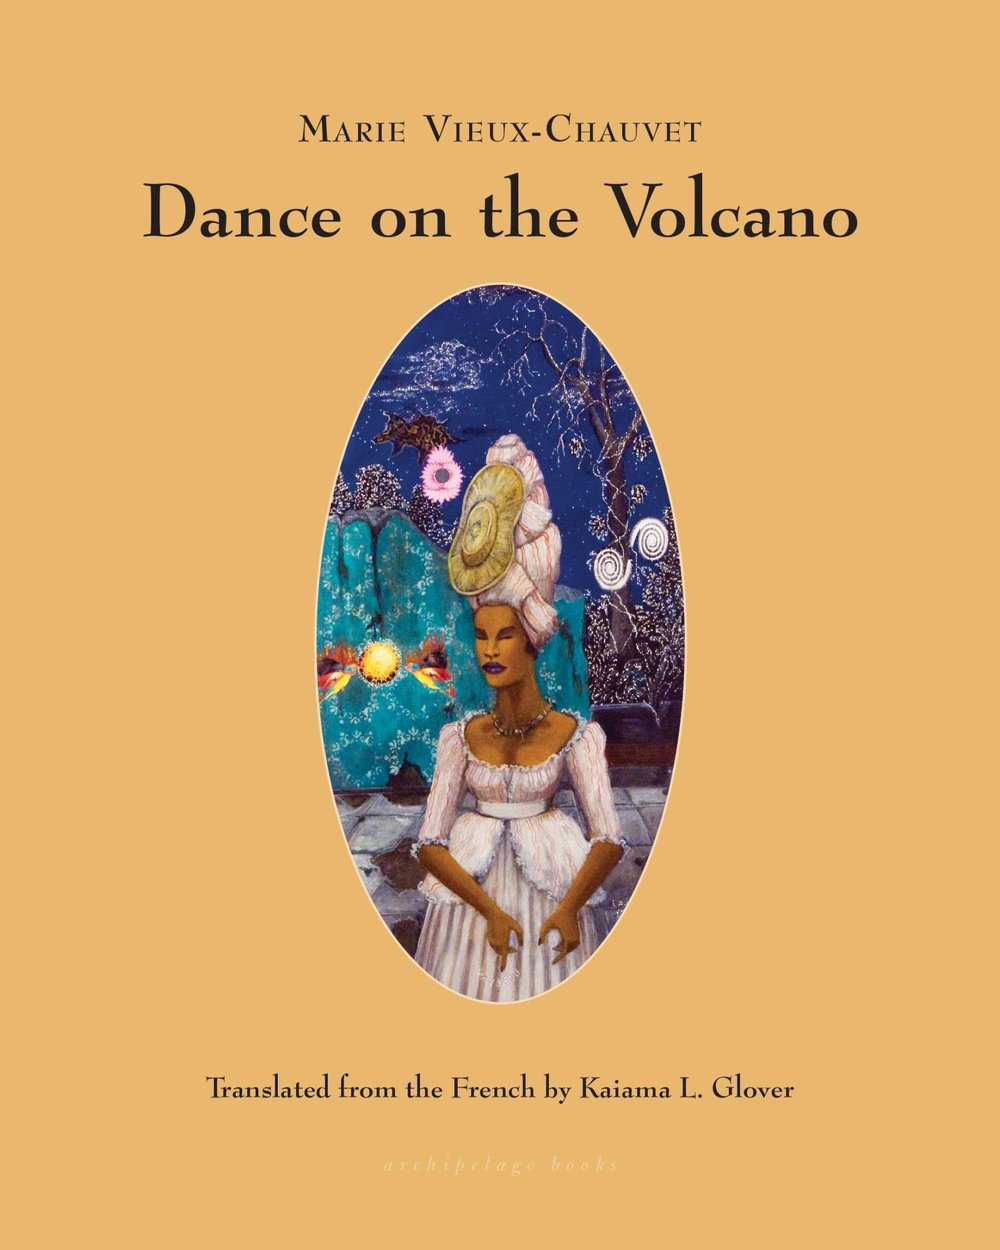 Dance on the Volcano by Marie Vieux Chauvet,  translated by Kaiama L. Glover - Archipelago BooksFor fans of historical fiction or Caribbean literature—Lauren, Editor